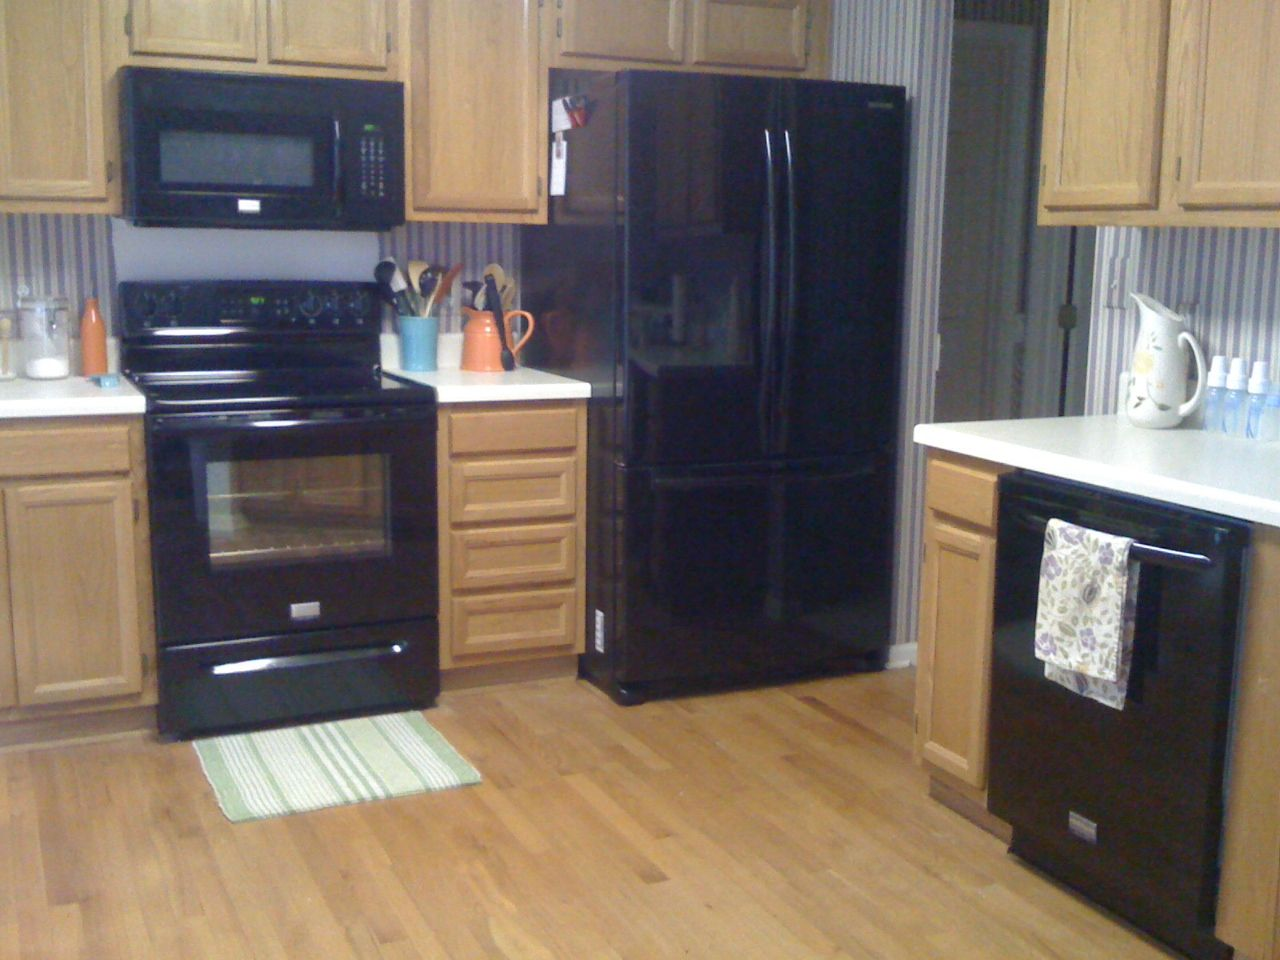 Uncategorized Kitchen Appliances Ideas kitchens with black appliances photos kitchen appliances